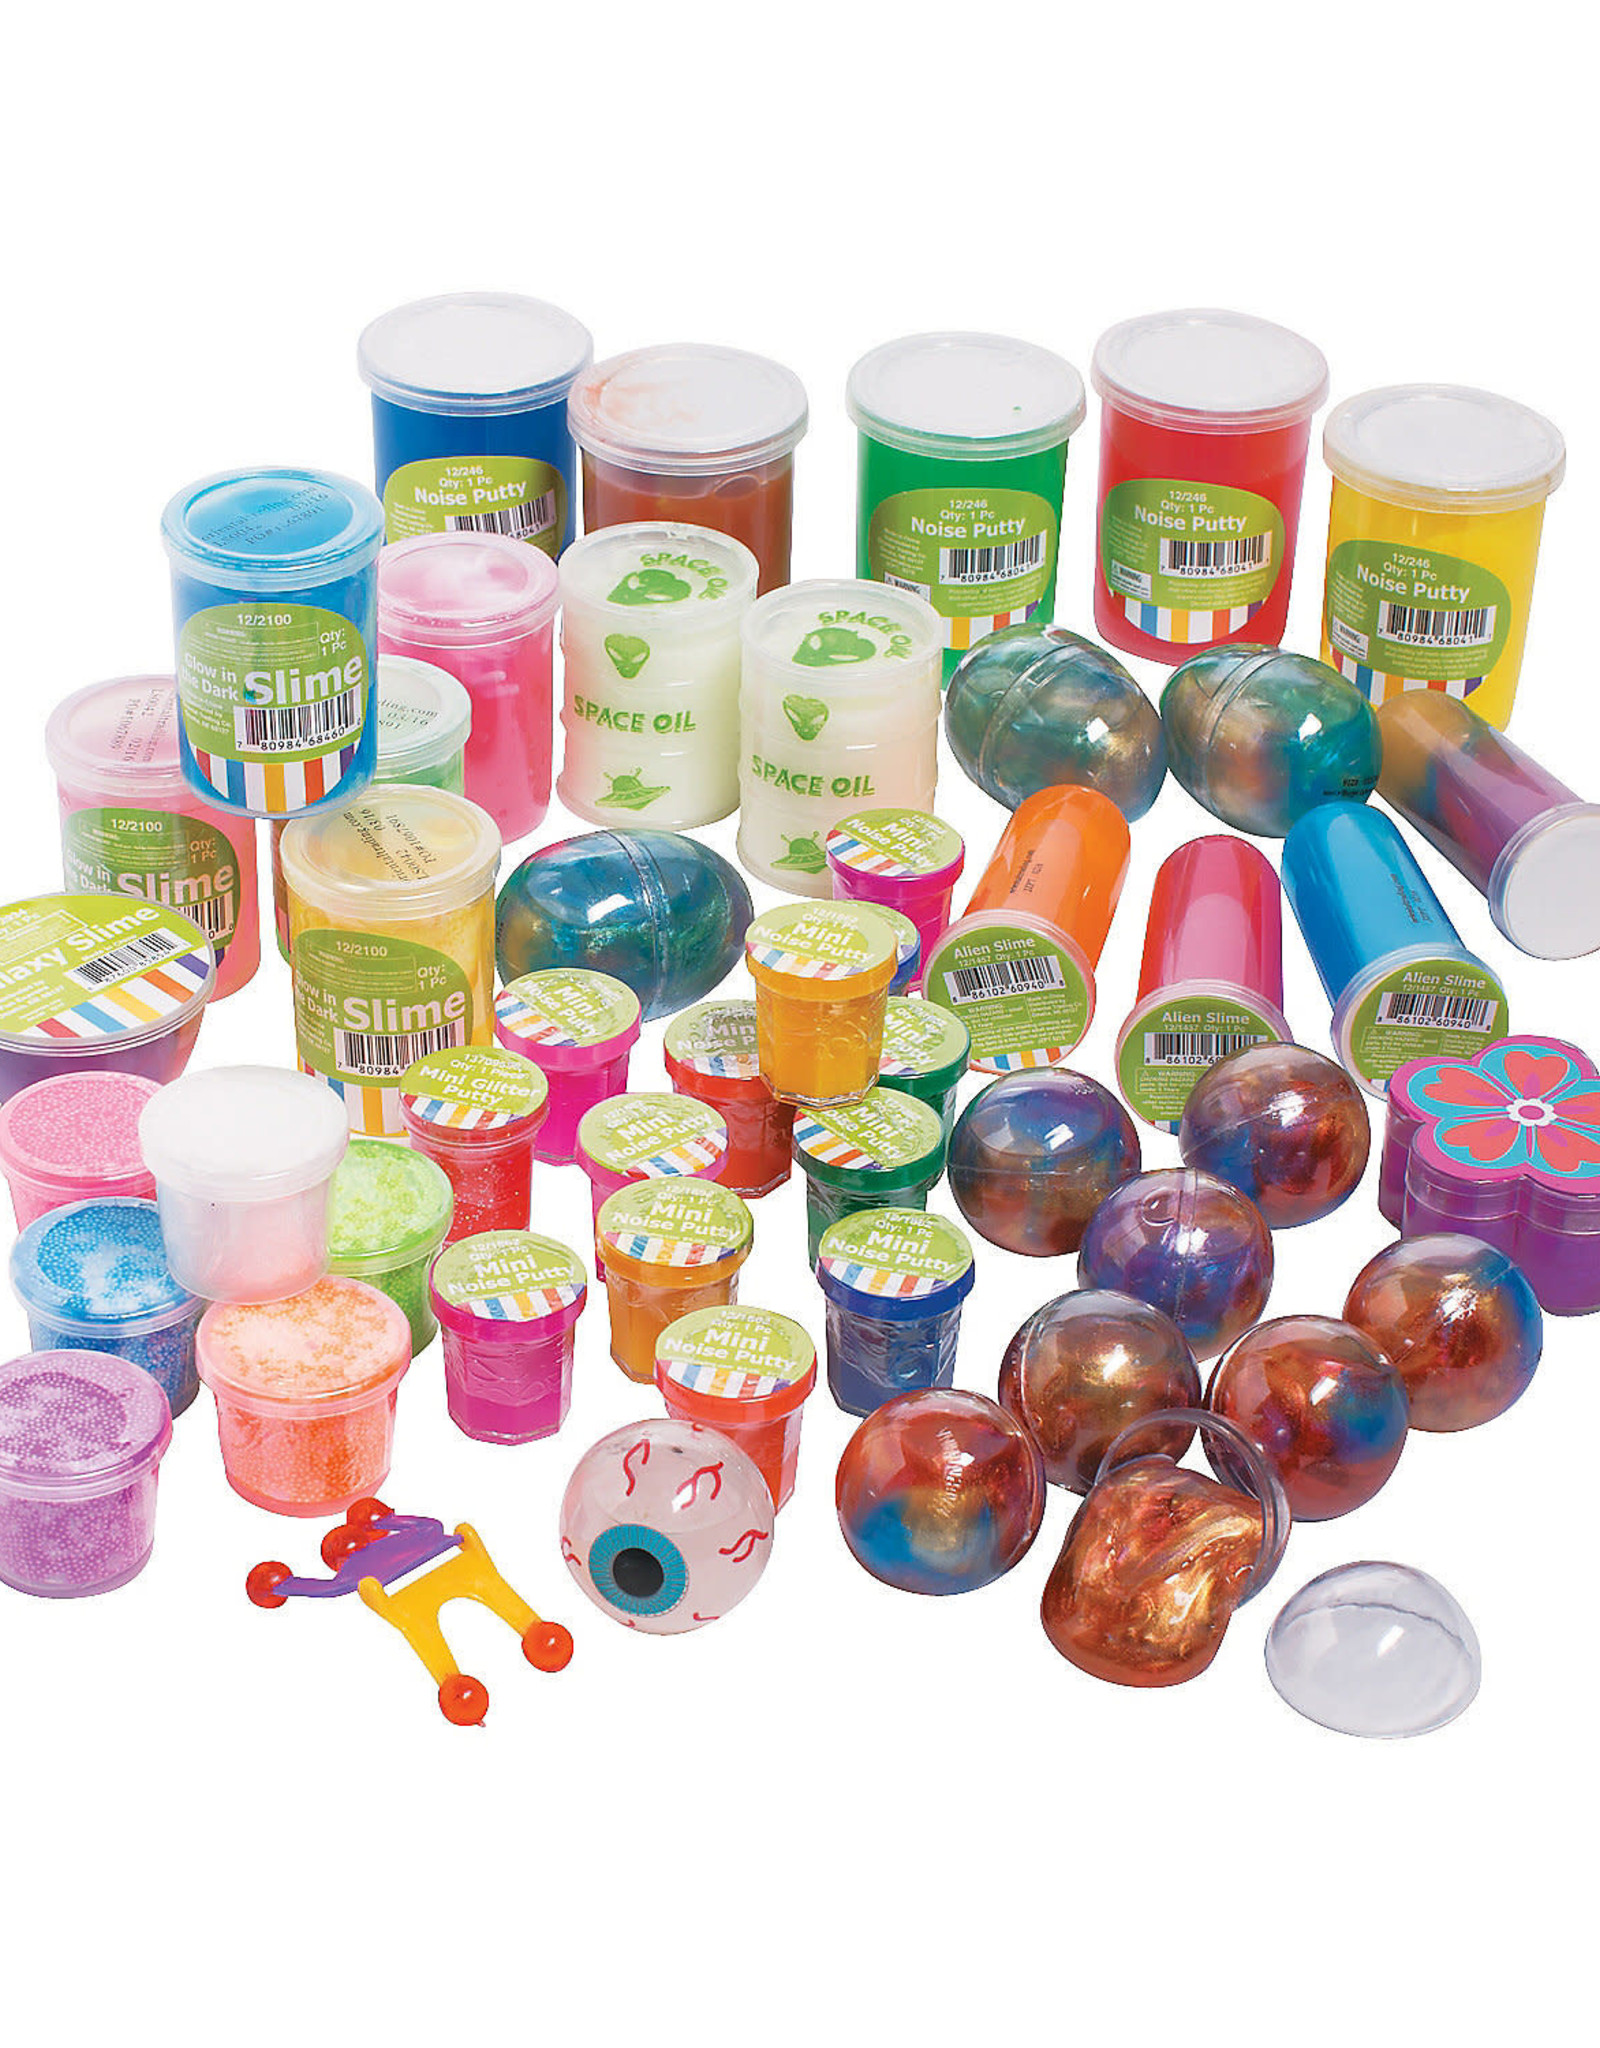 Oriental Trading Company Putty and Slime - Small size  (Assorted)